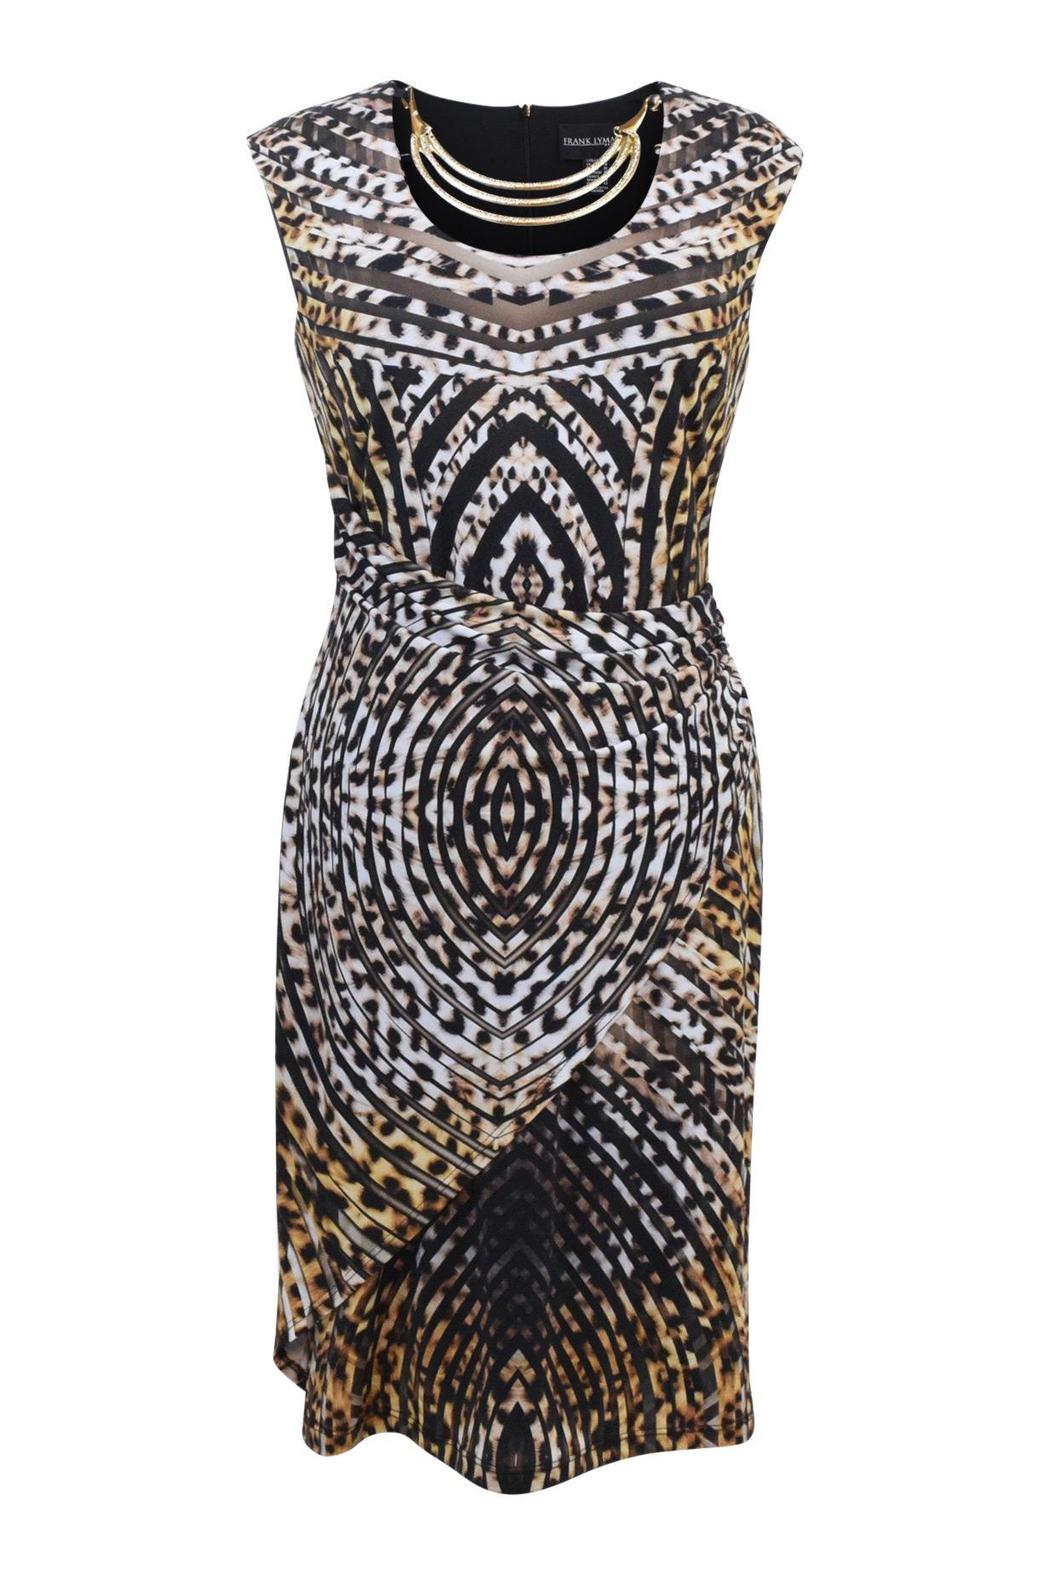 Frank Lyman Animal Print Dress - Main Image